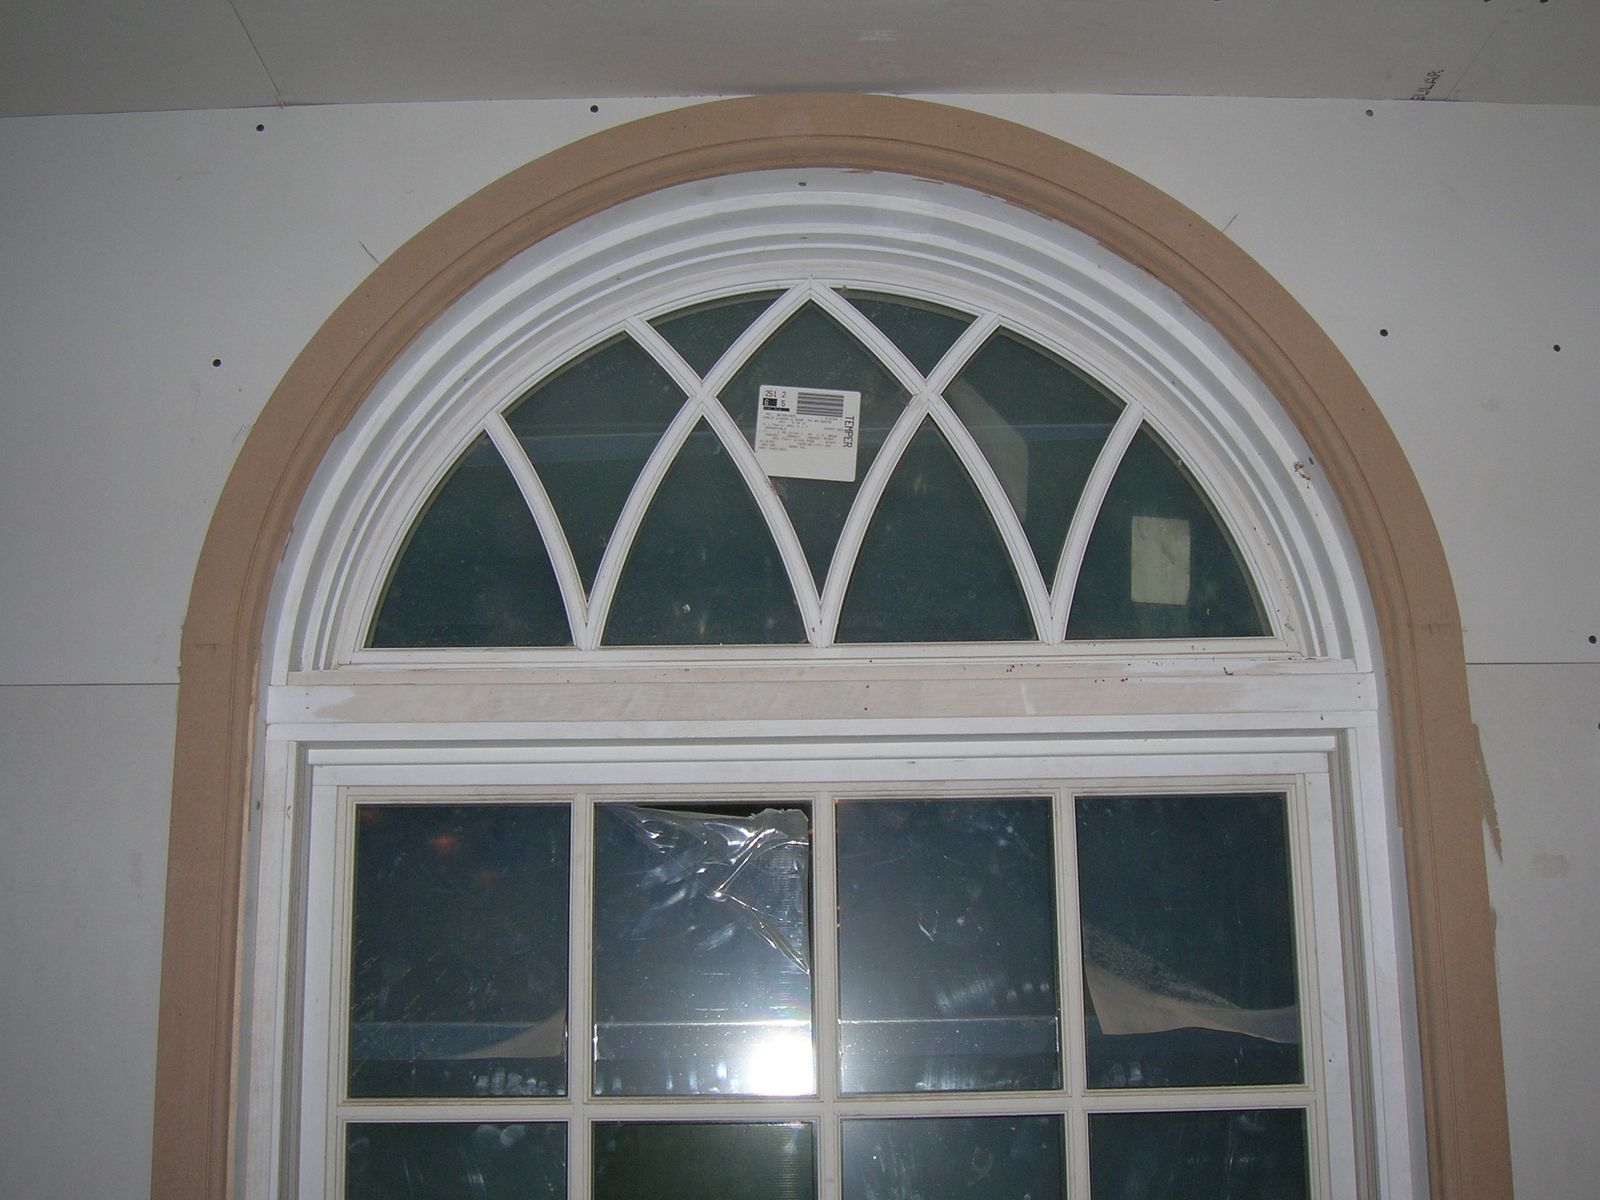 Window Casing For Those Weird Half Moon Windows For